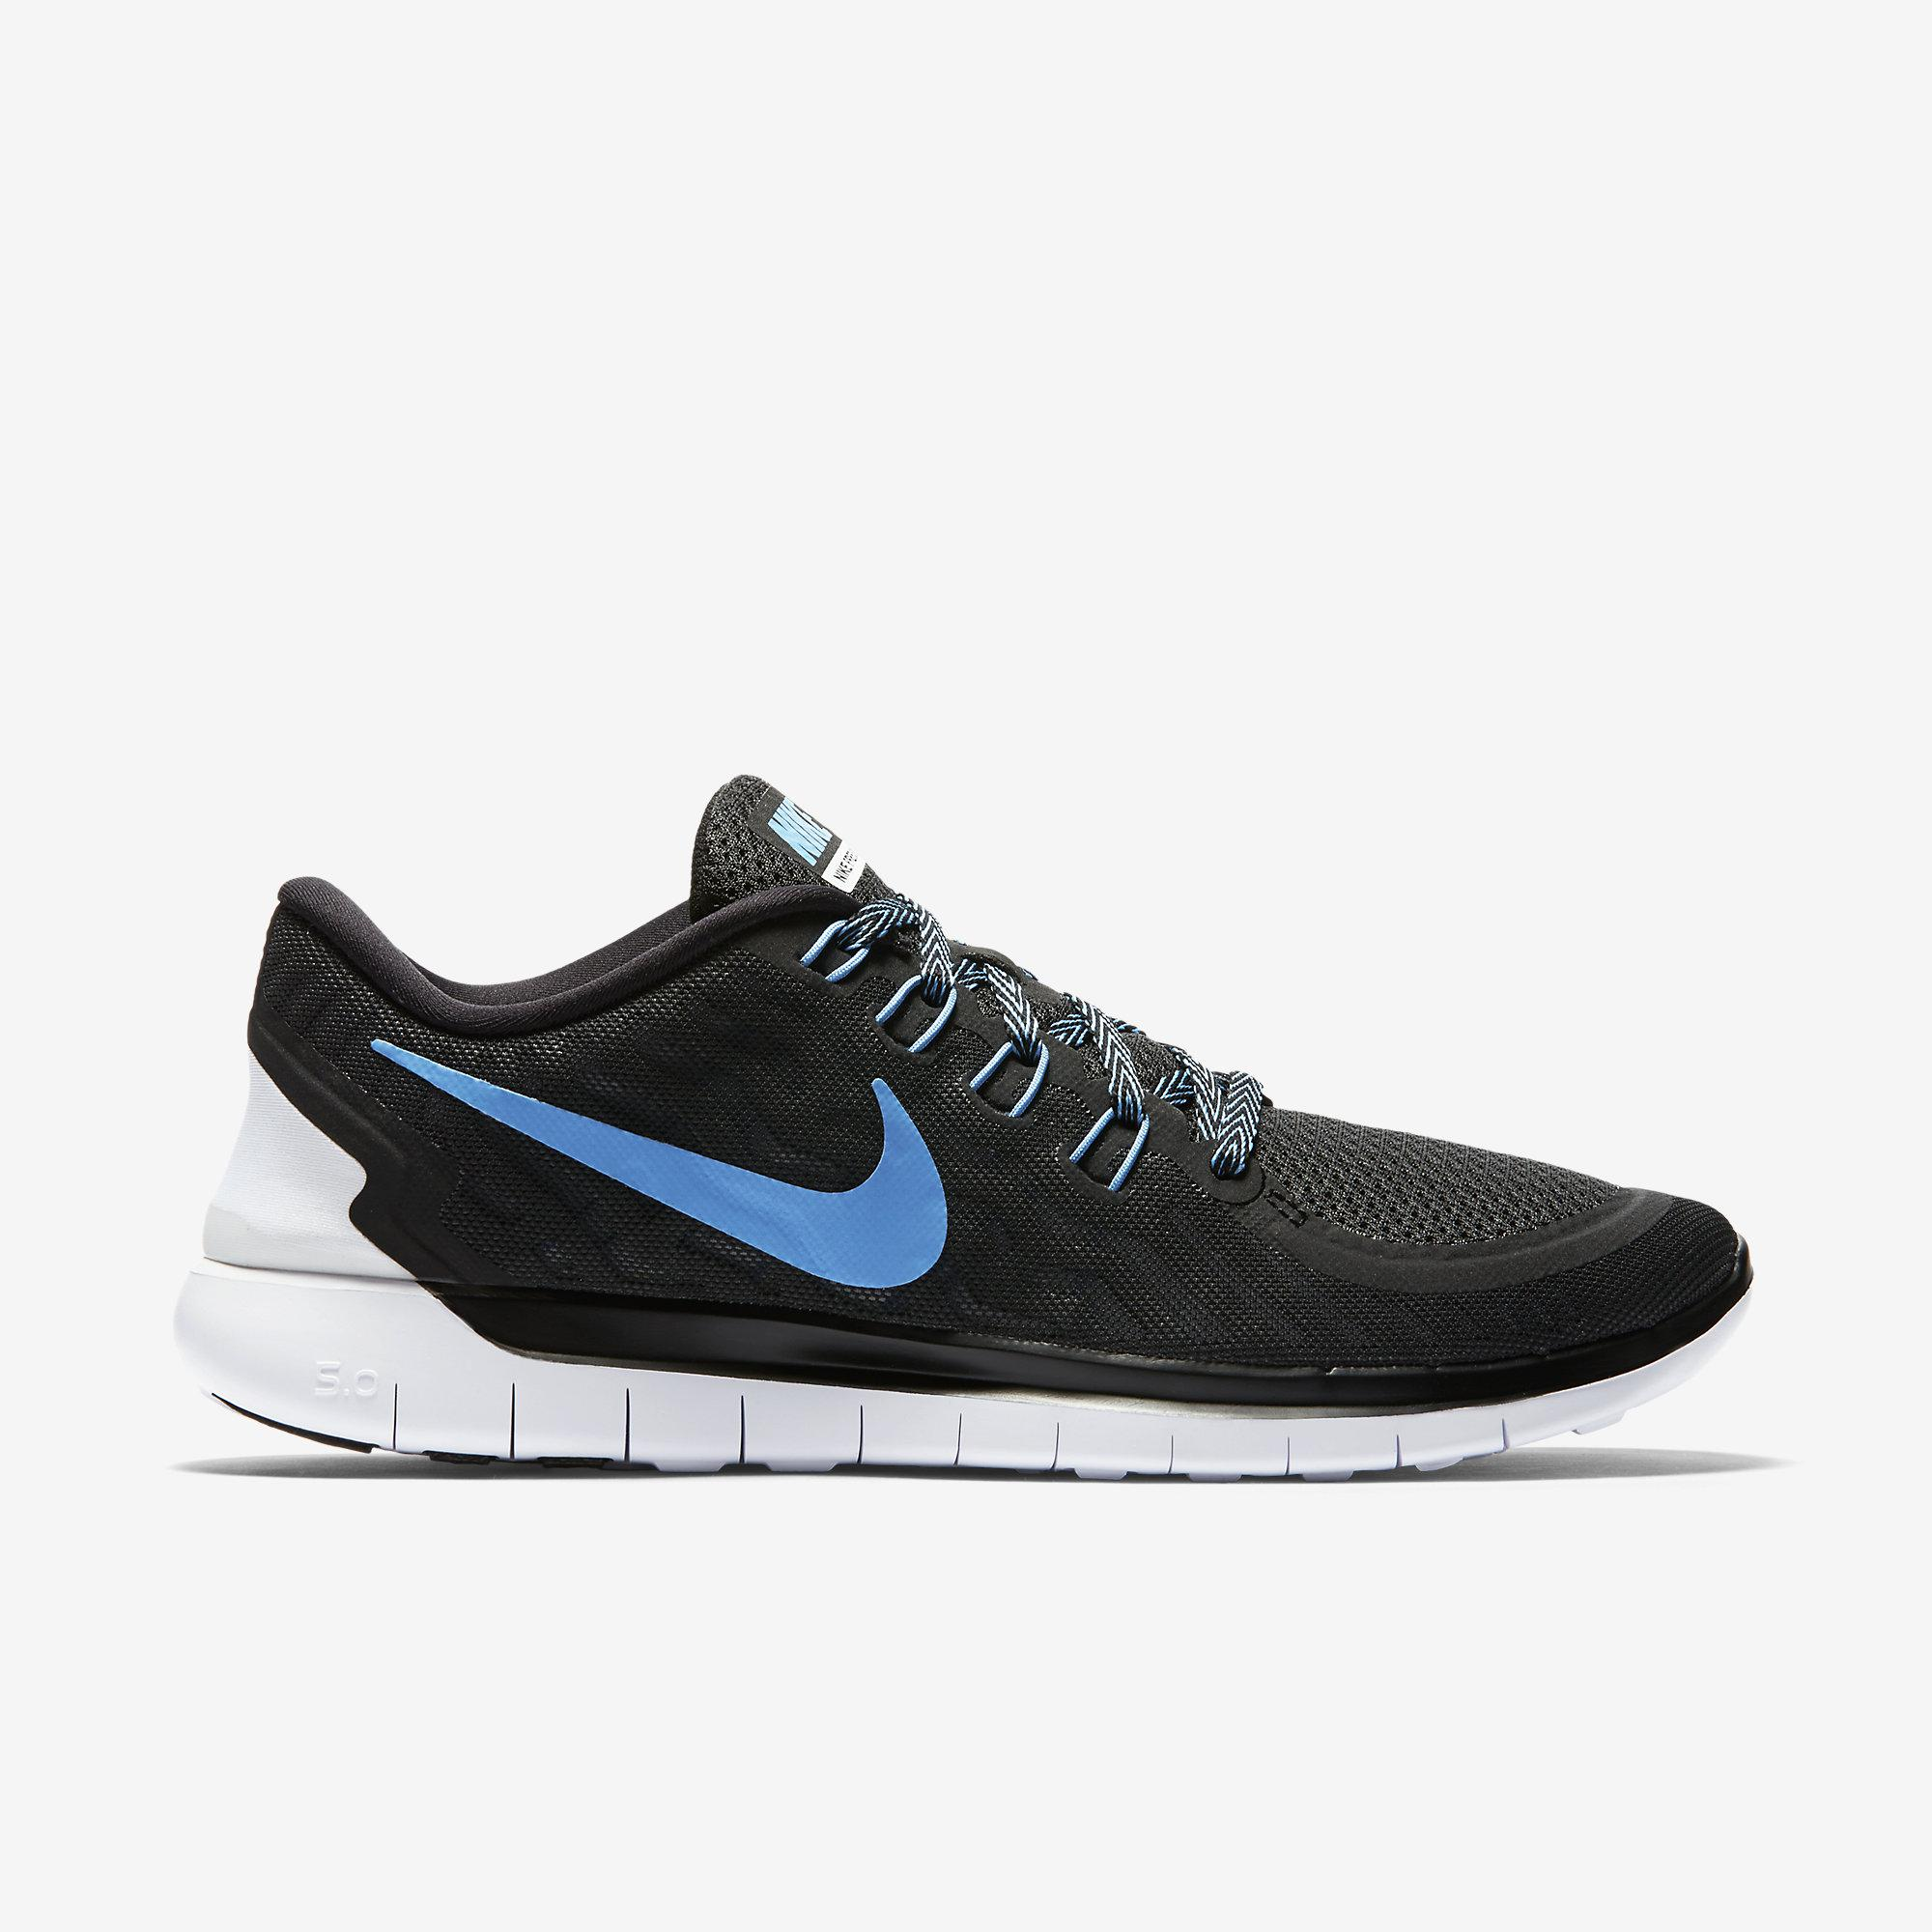 Nike Mens Free 5.0 Running Shoes - Black University Blue White -  Tennisnuts.com a6e07b0ca4b9